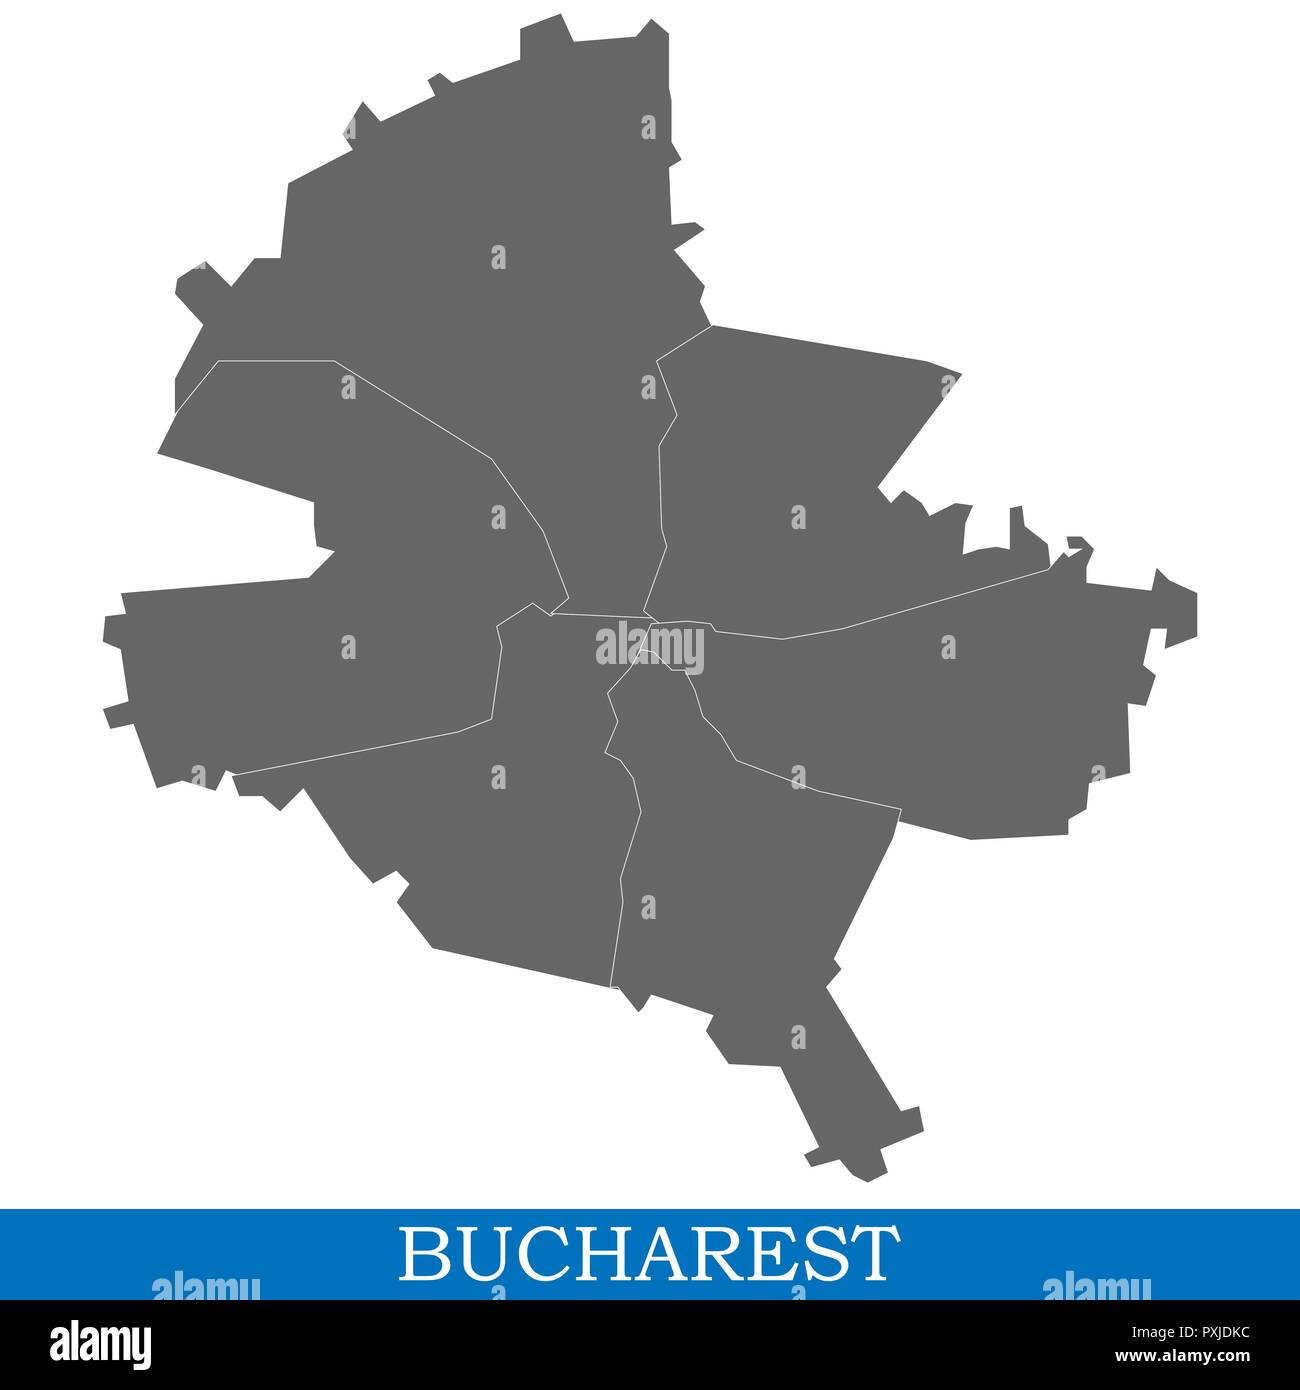 High Quality Map Of Bucharest Is A City In Romania With Borders